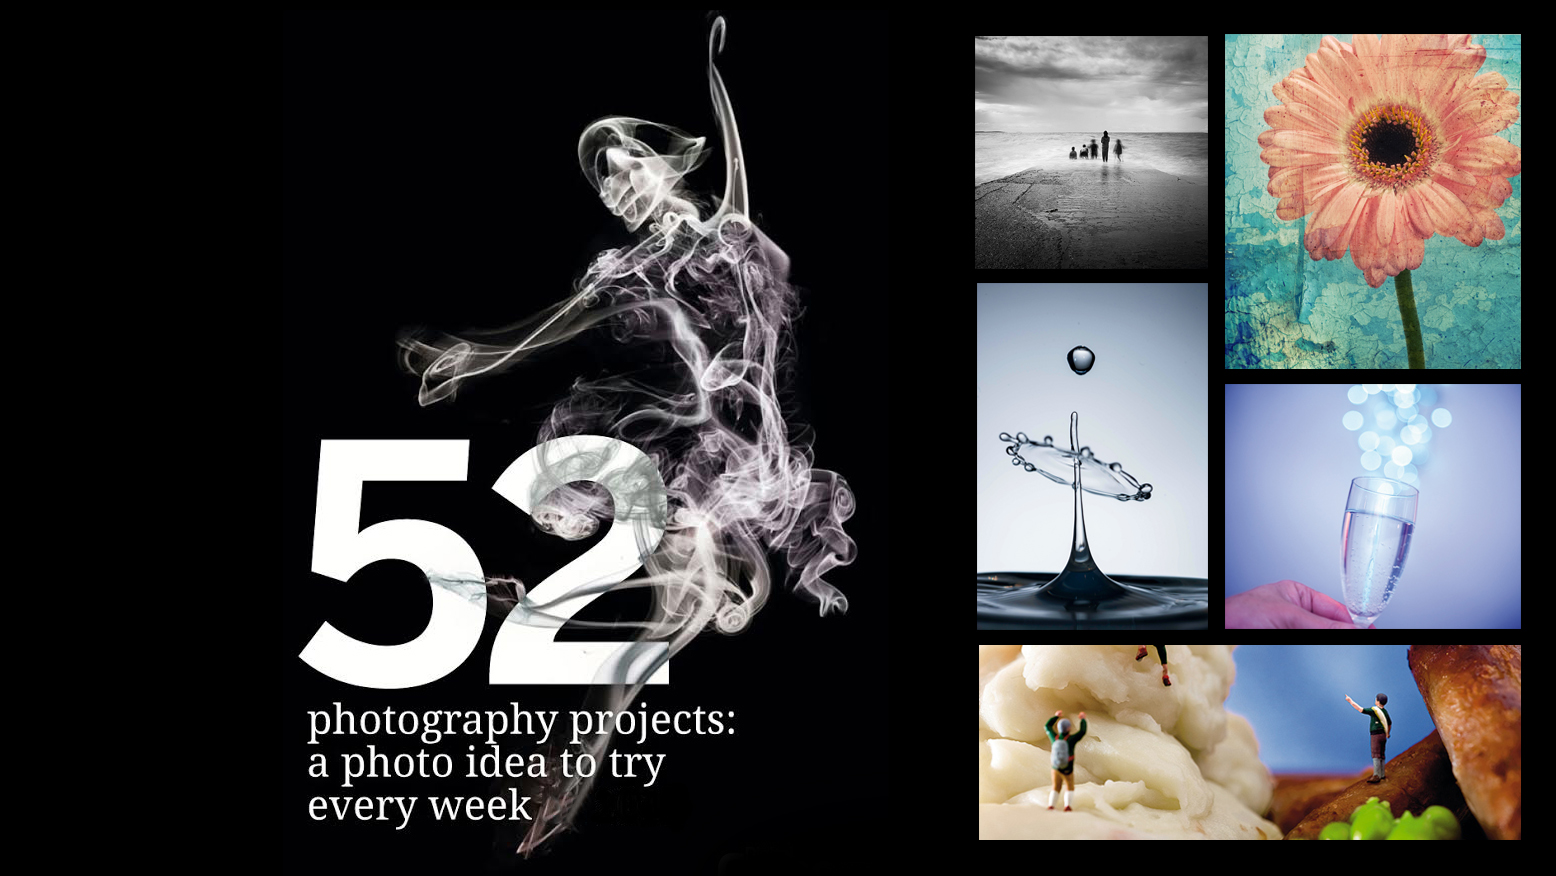 Cool Photography Assignments 7 Photography Projects To